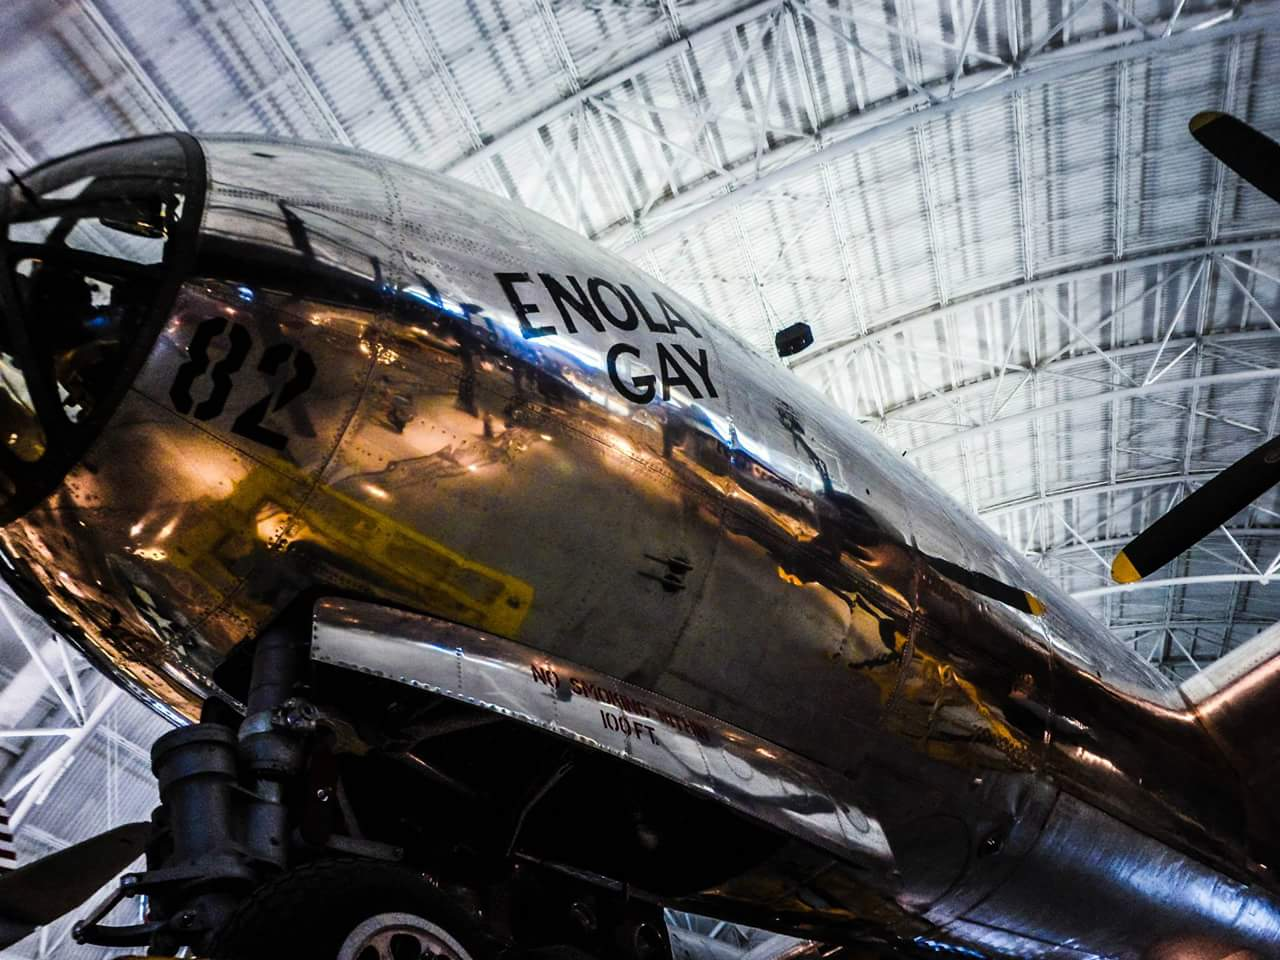 Guide to Smithsonian Air & Space Museum - 5 Planes you absolutely can't miss